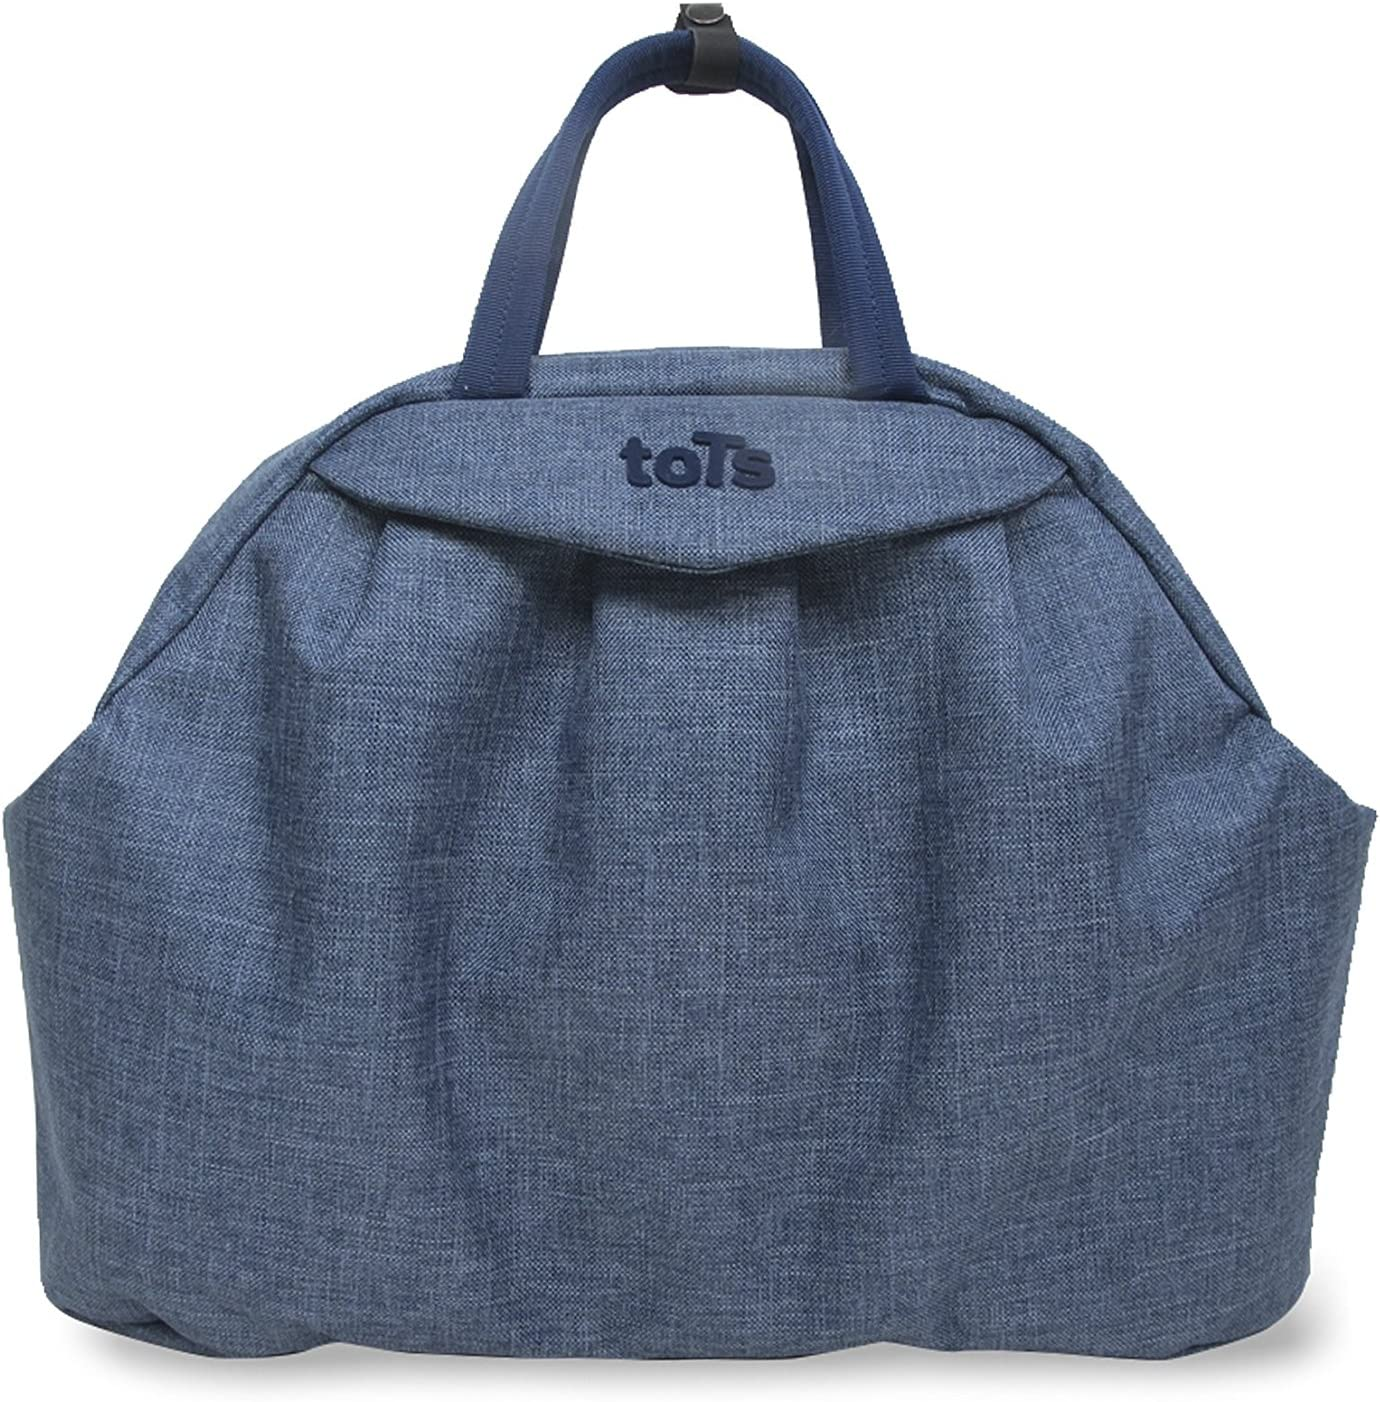 Chic Baby Changing Bag/Bag in Bag 45 x 14 x 32?cm with Range of Accessories Blue by ToTs by Smartrike